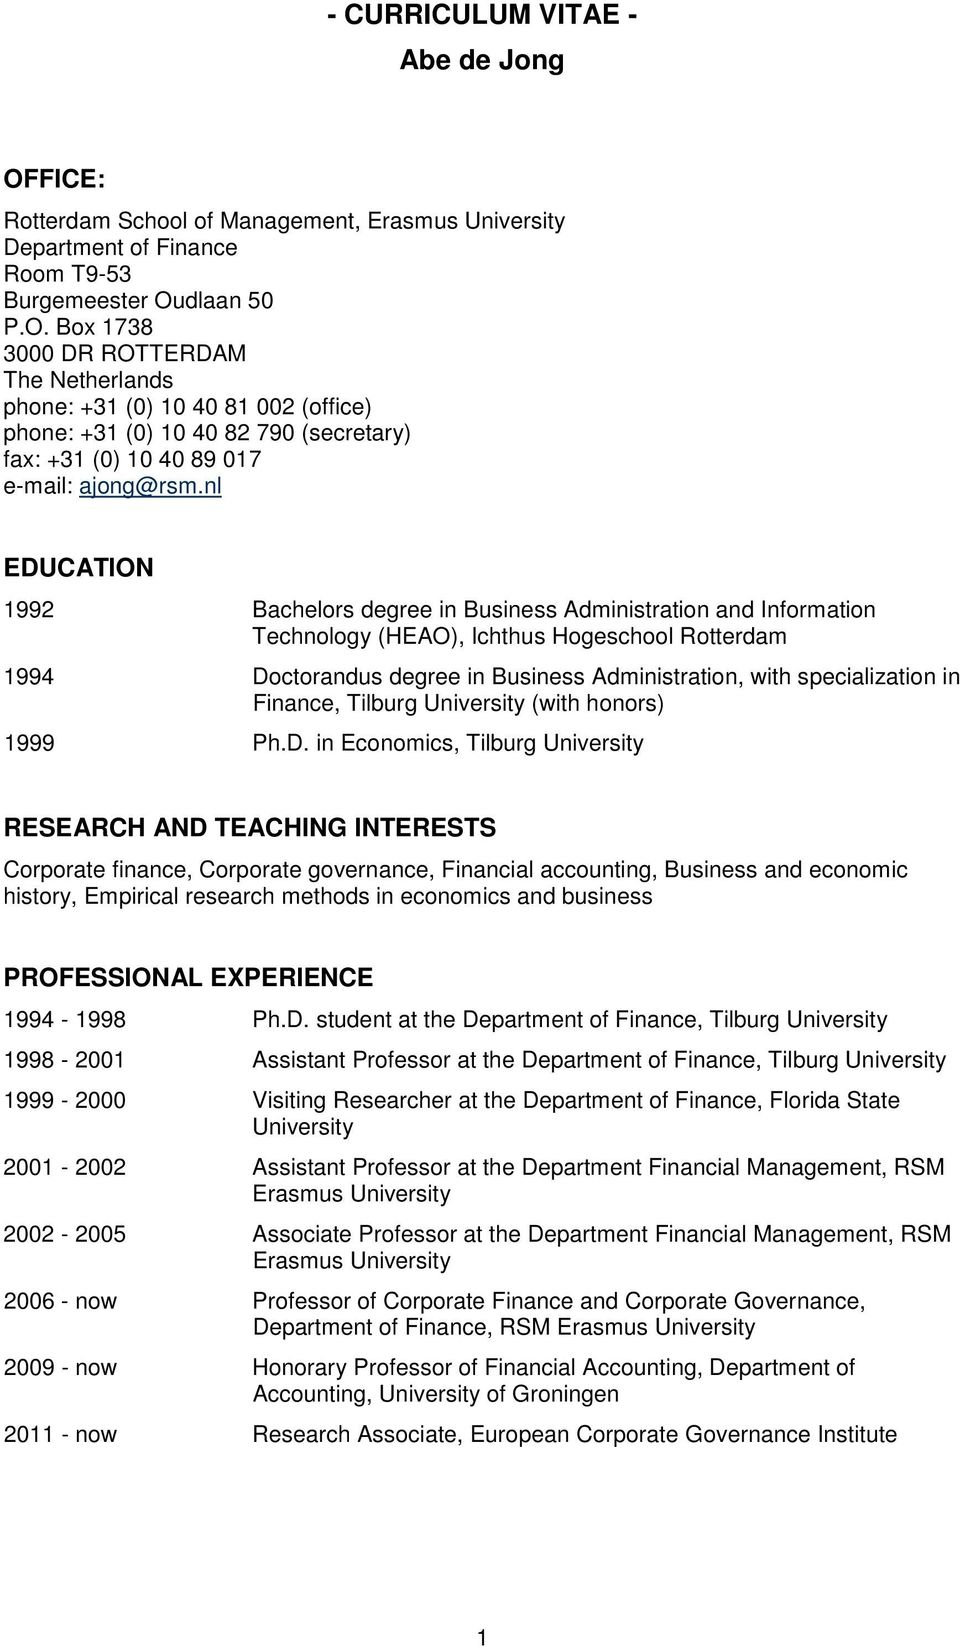 in Finance, Tilburg University (with honors) 1999 Ph.D.